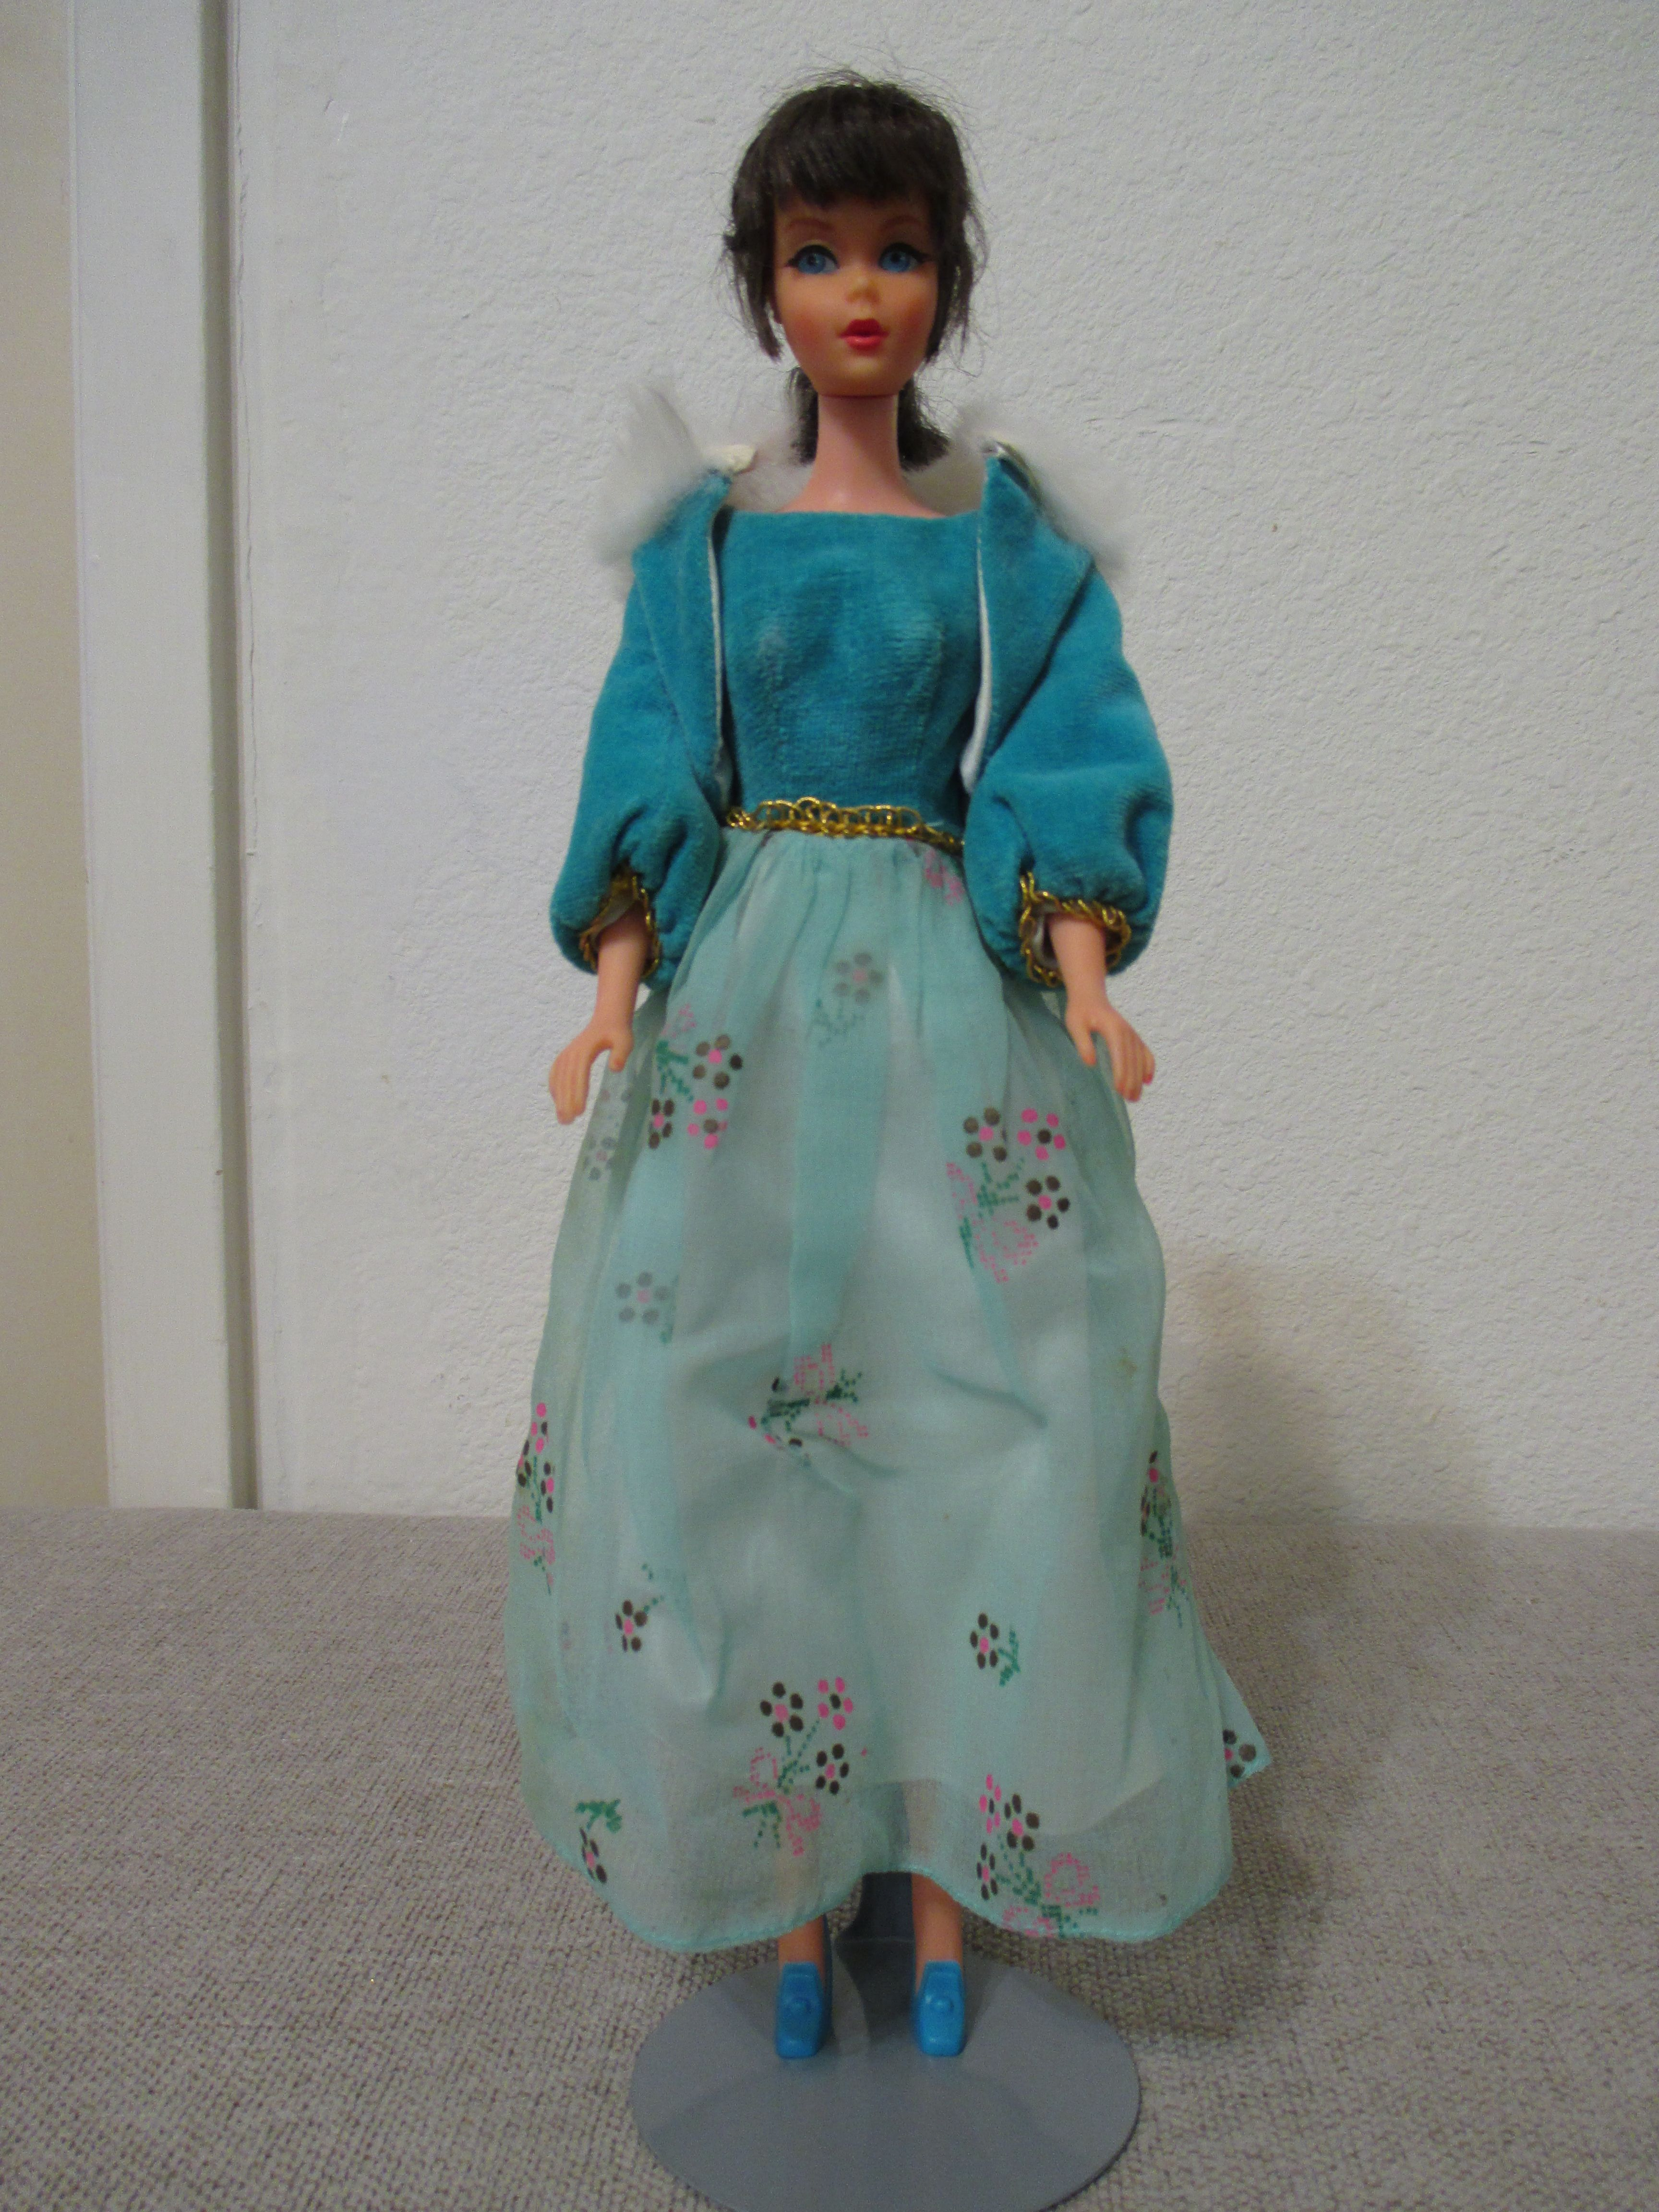 Local Craigslist Find With Images High Waisted Skirt Fashion Vintage Barbie Dolls